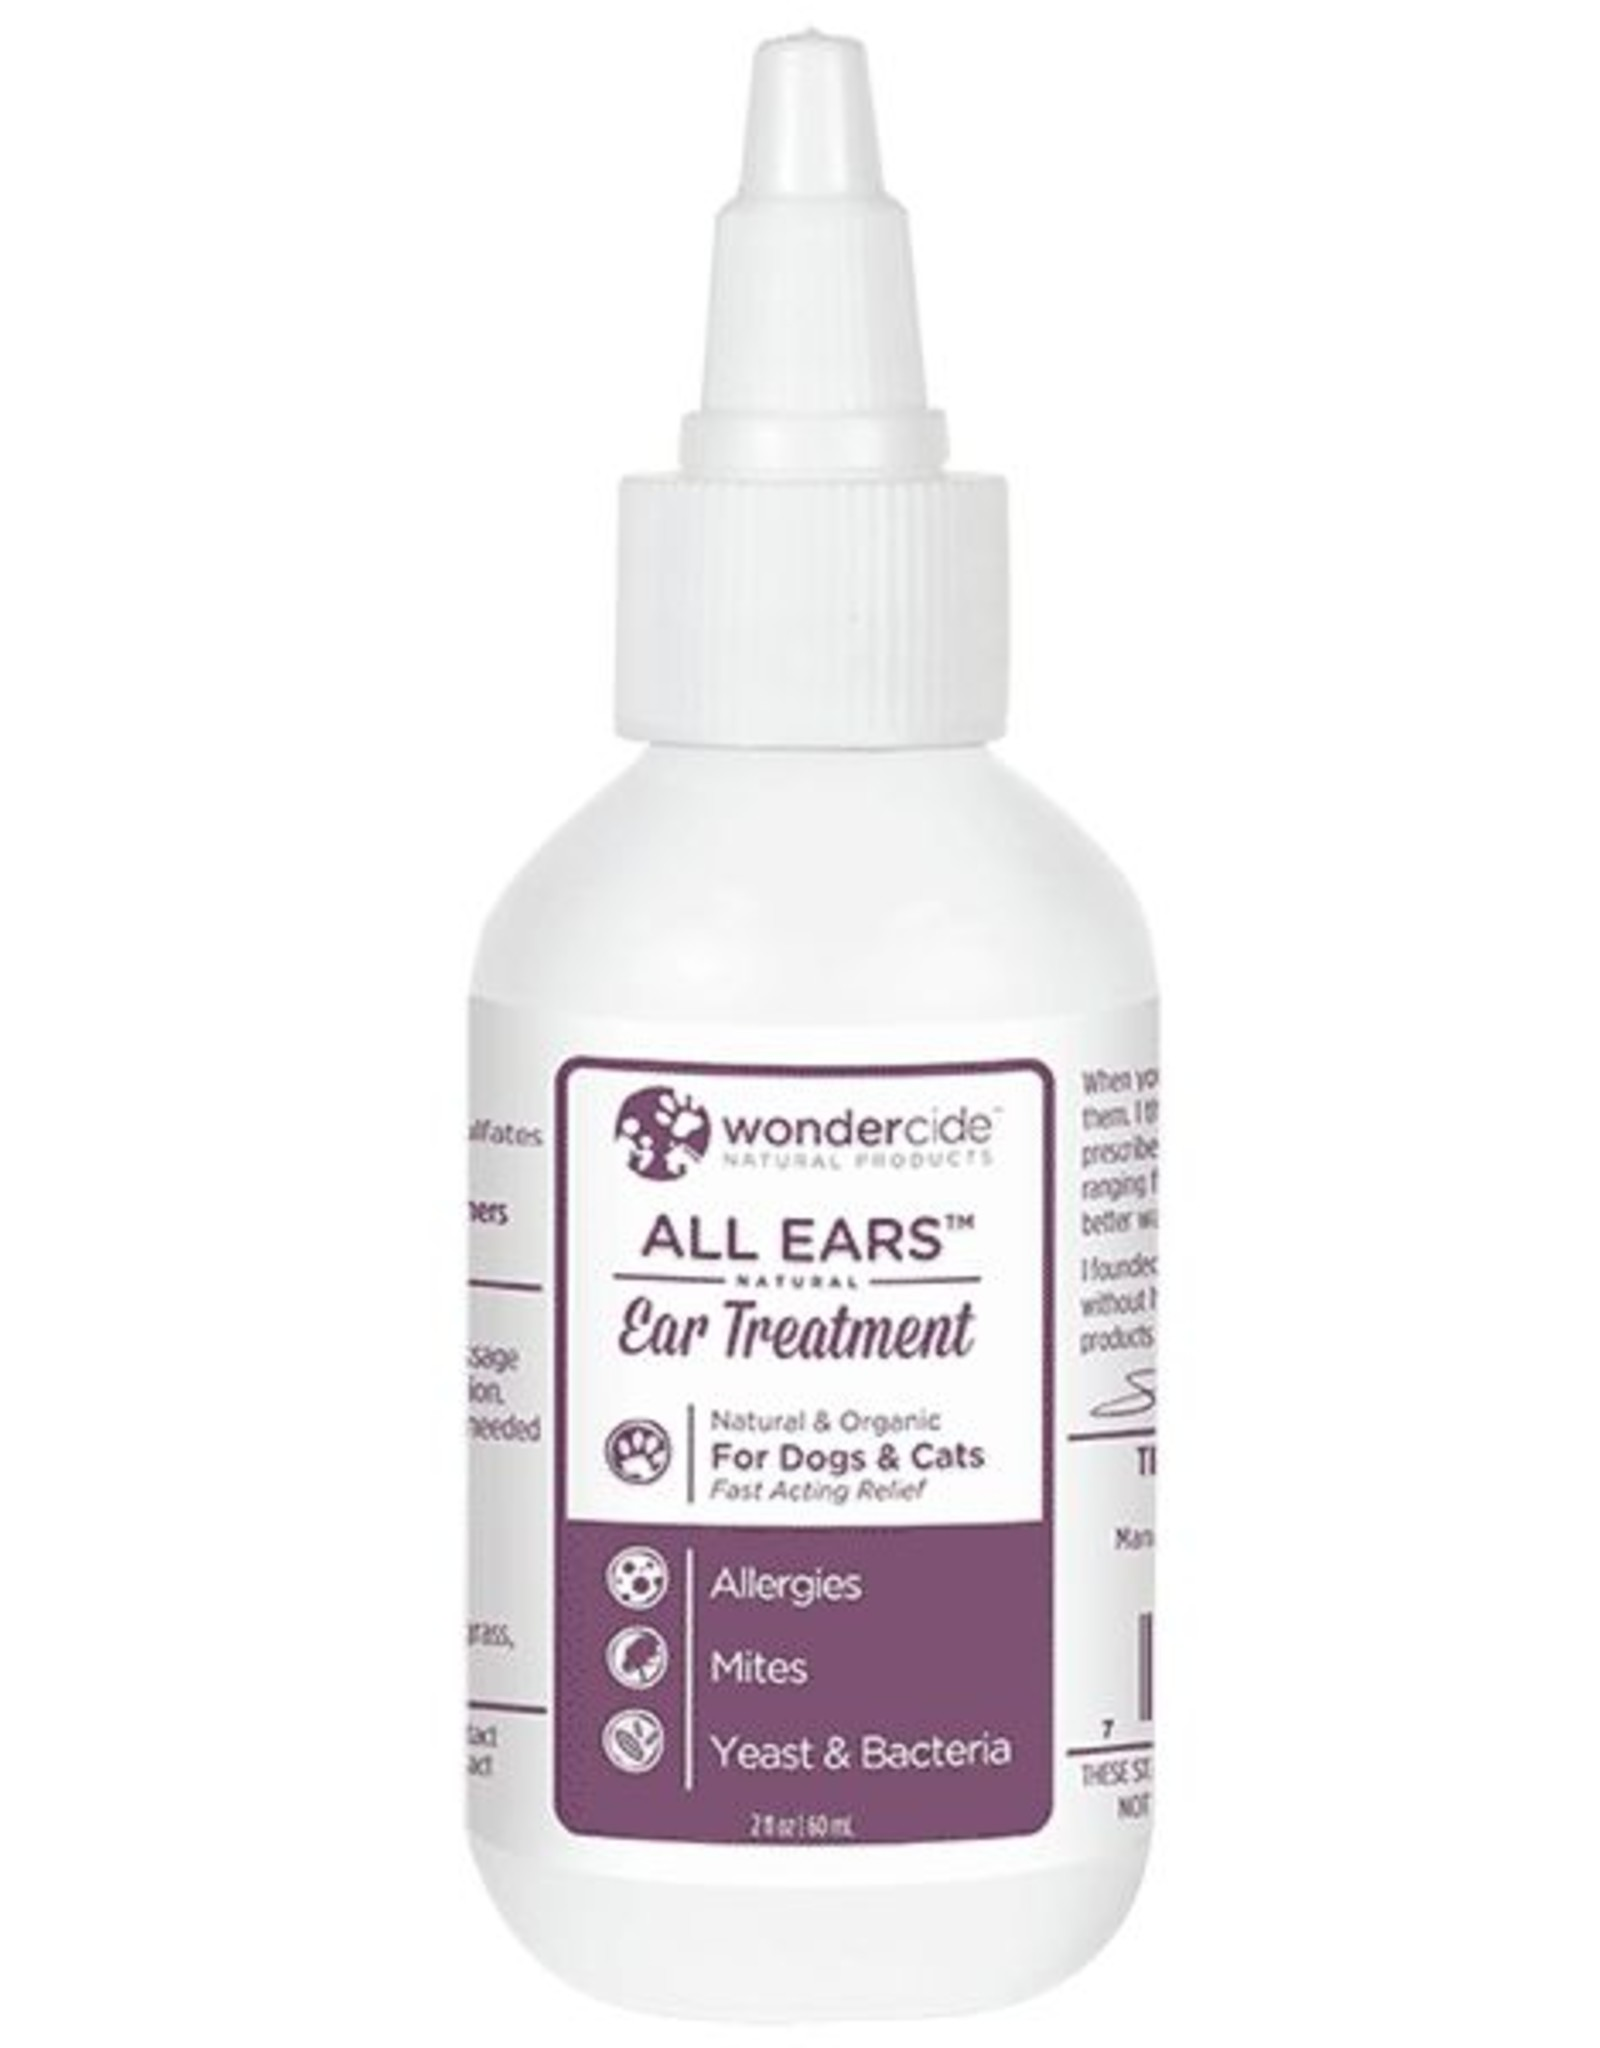 Wondercide Wondercide All Ears Treatment - Ear Mite and Infection 2oz